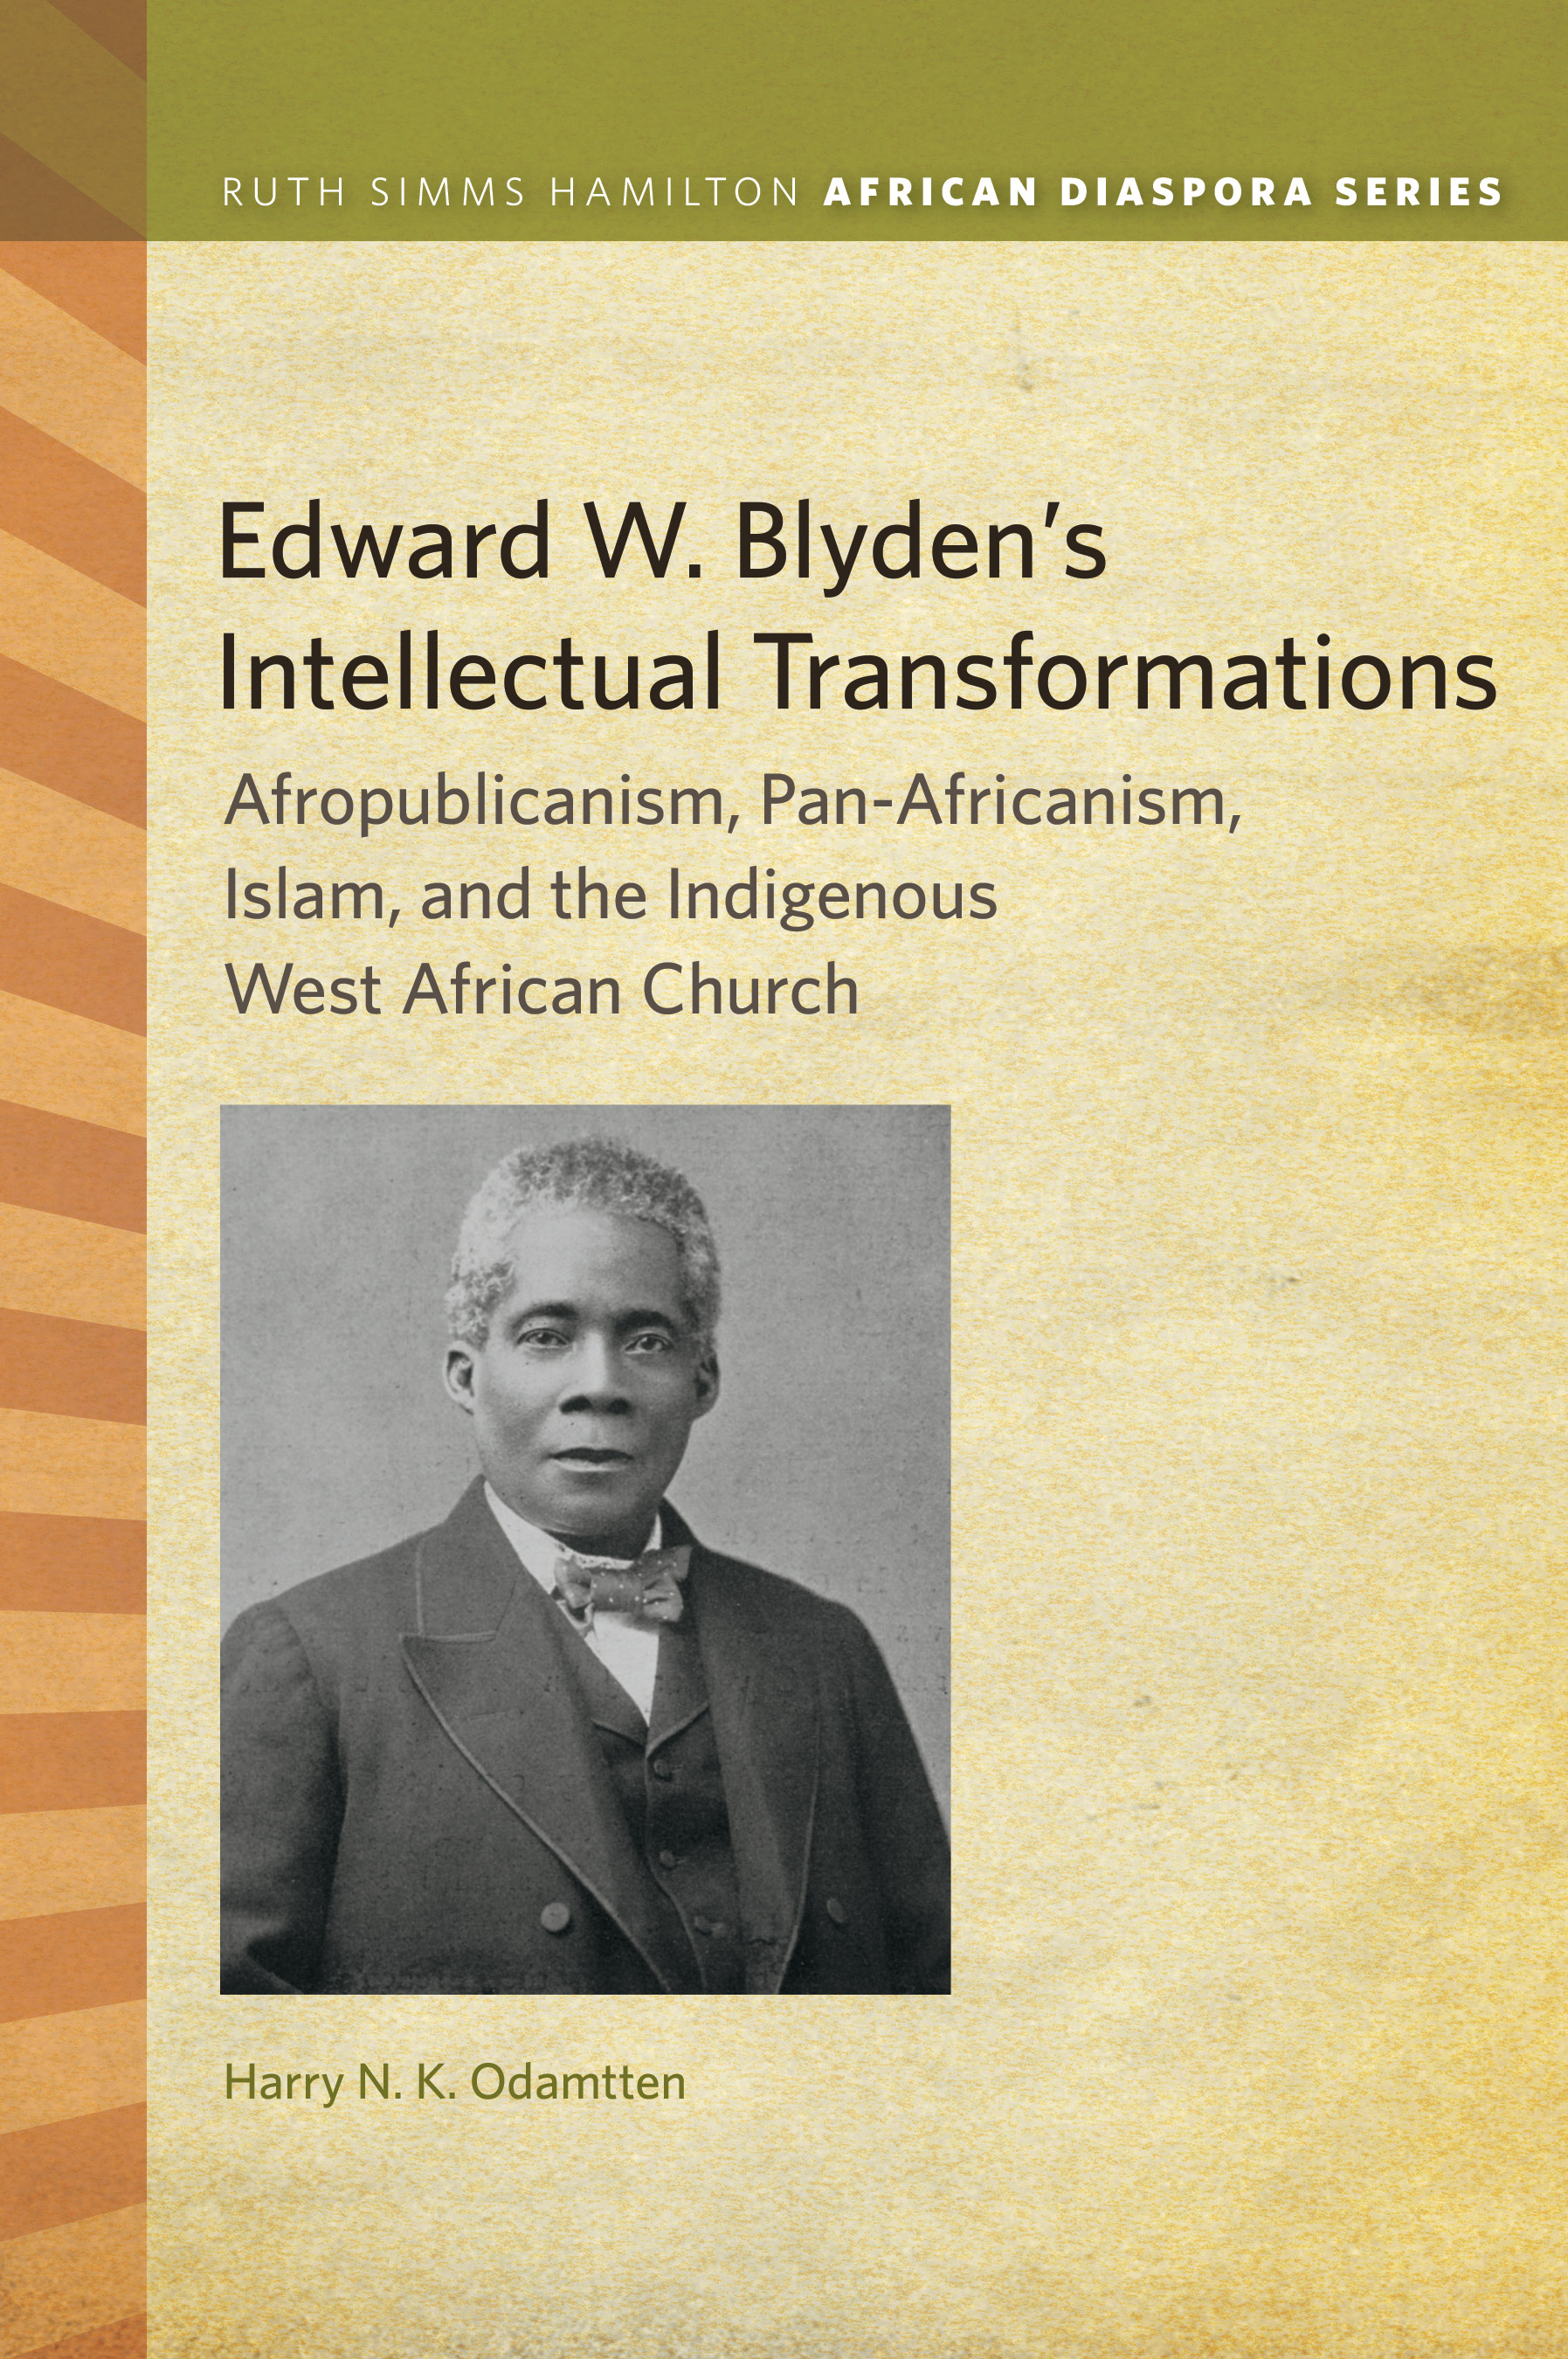 Edward W. Blyden's Intellectual Transformations cover